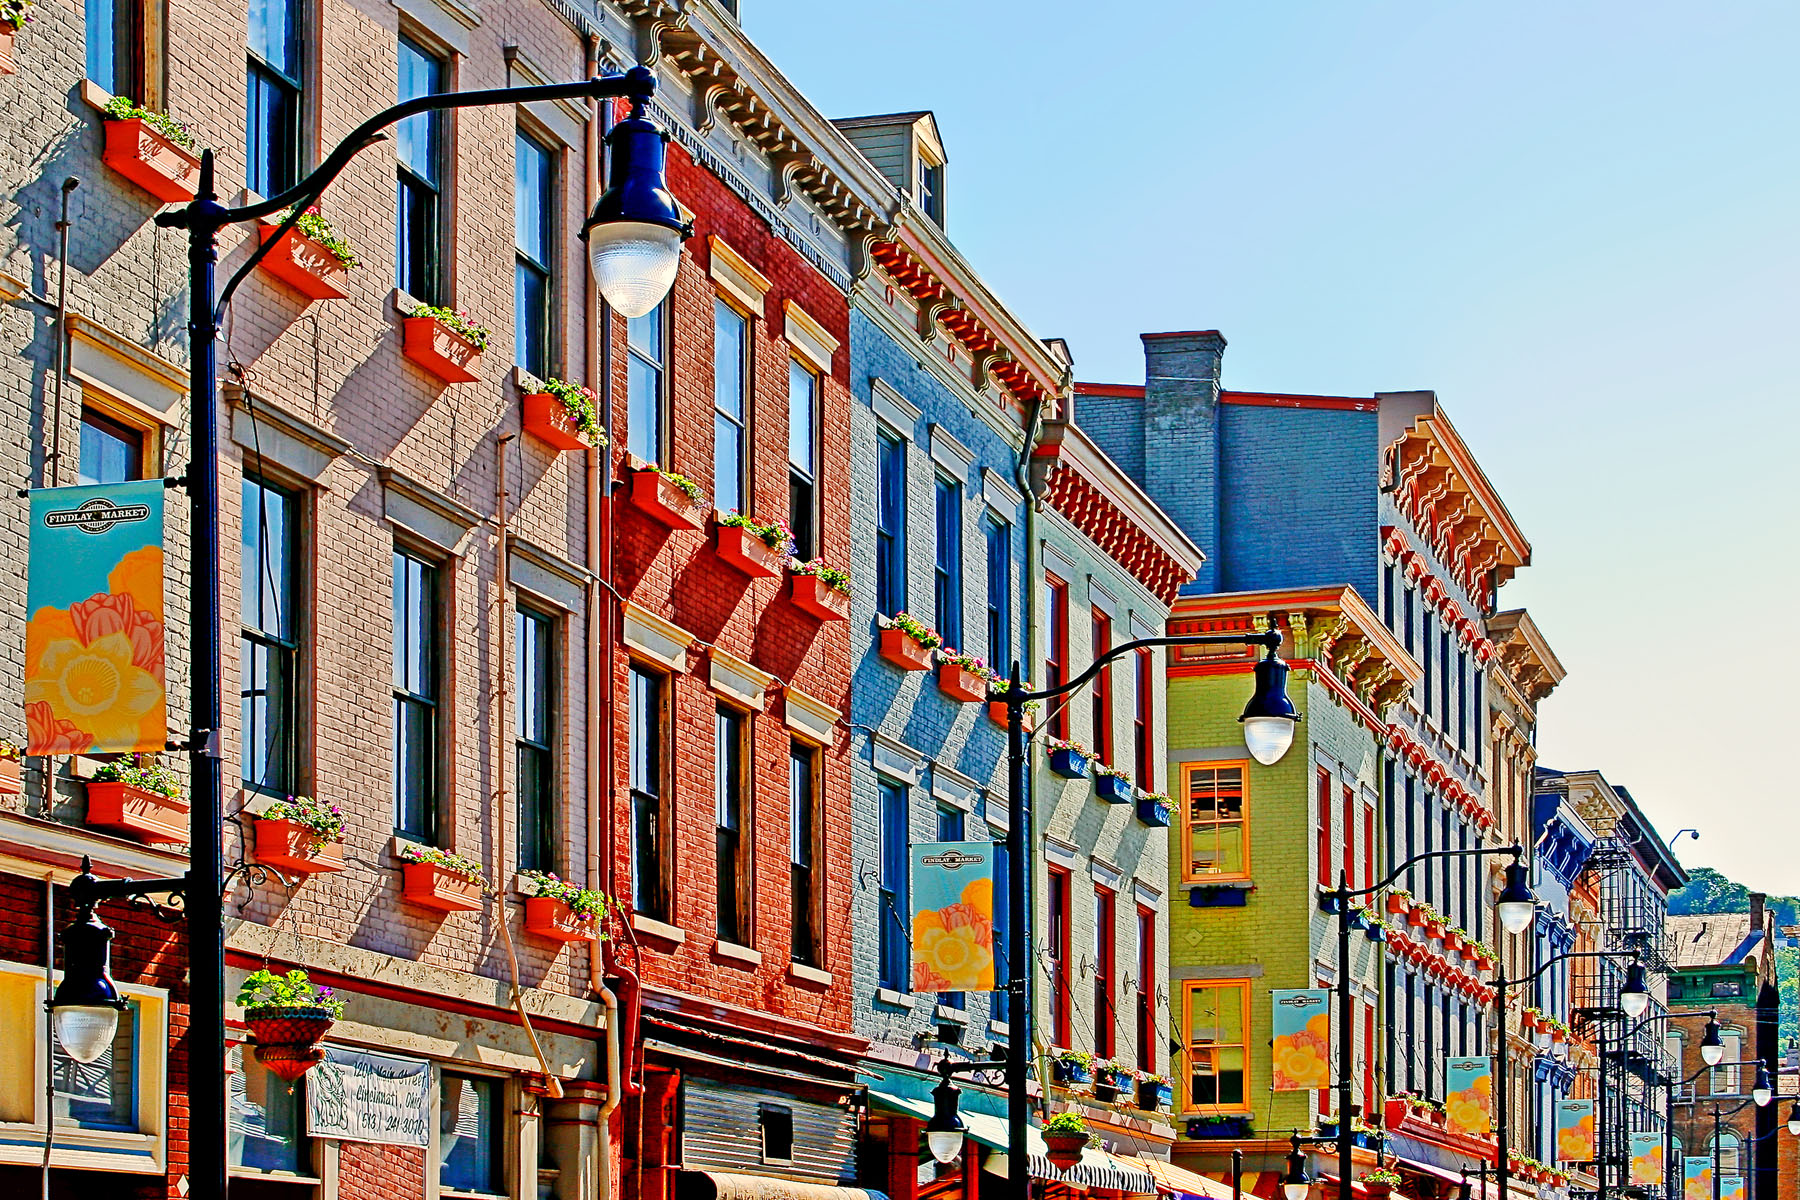 NEXT TO FINDLAY - My wife and I happened to go to Findlay Market the first time they opened on Sunday. The city had spent money dressing up the exterior of the buildings and the sun was shining. It was a beautiful day. I was glad I had my camera.